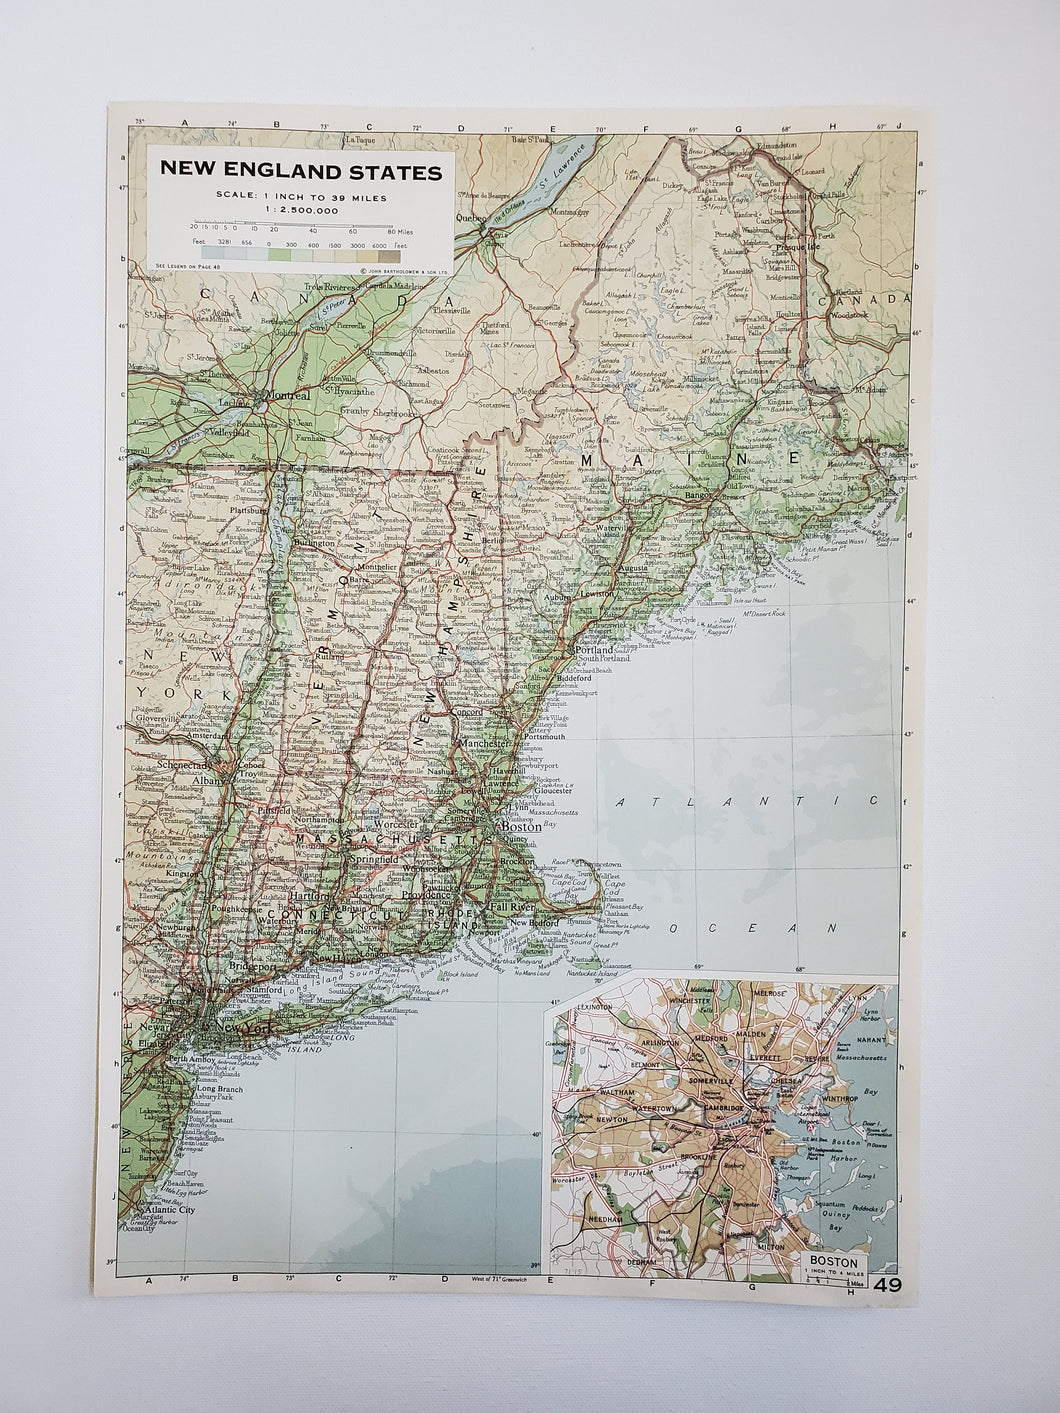 Vintage Map of New England and Boston 1963 - Handmade in Harrisburg